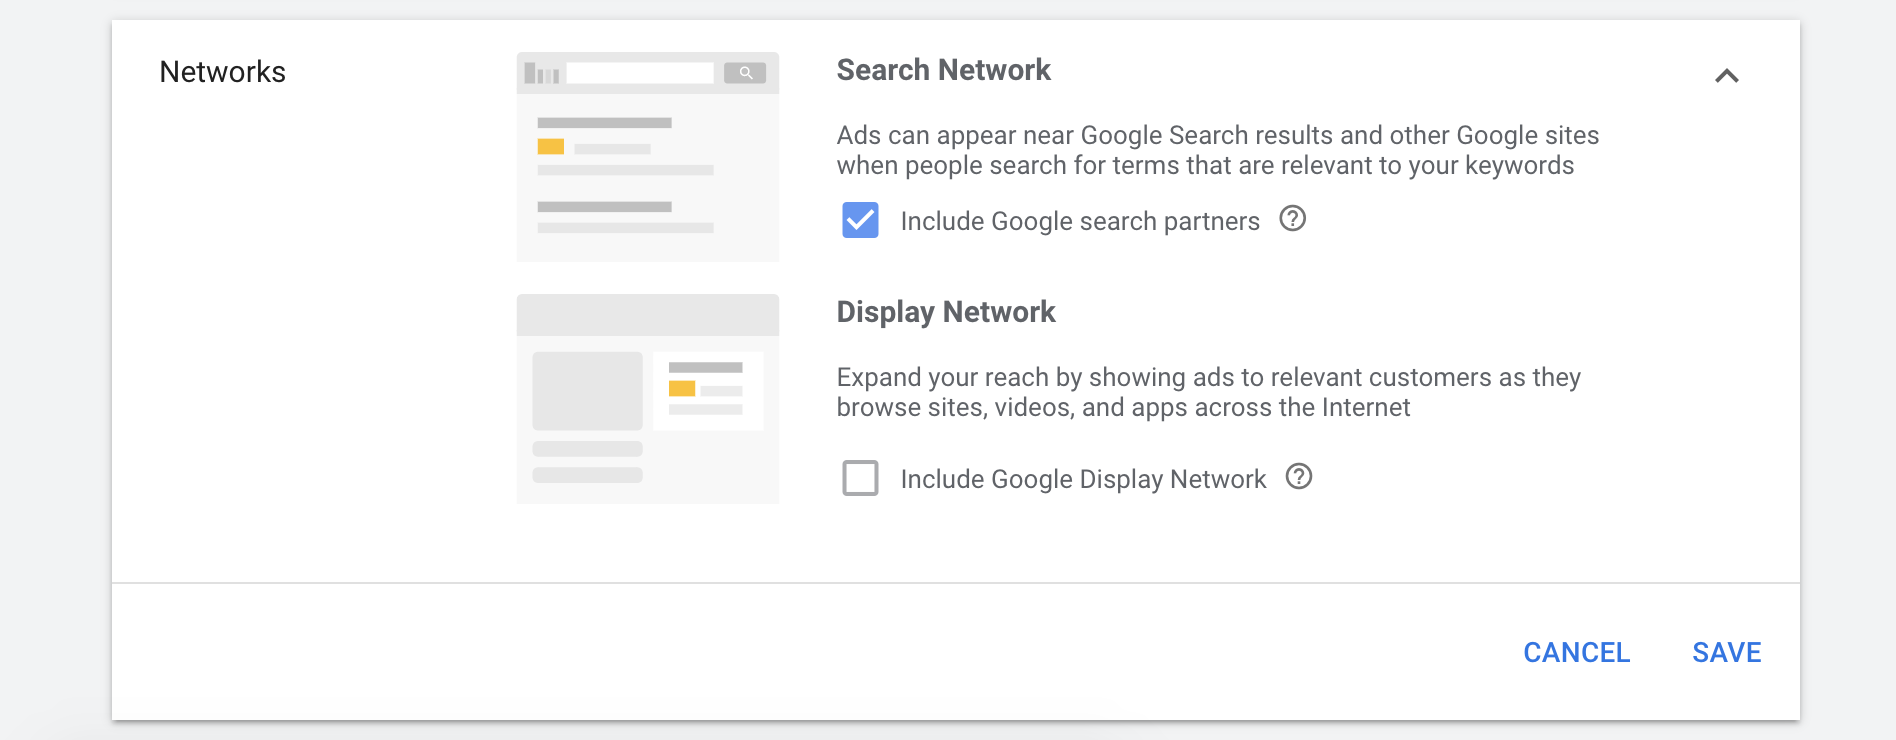 Networks in Google Ads campaign settings